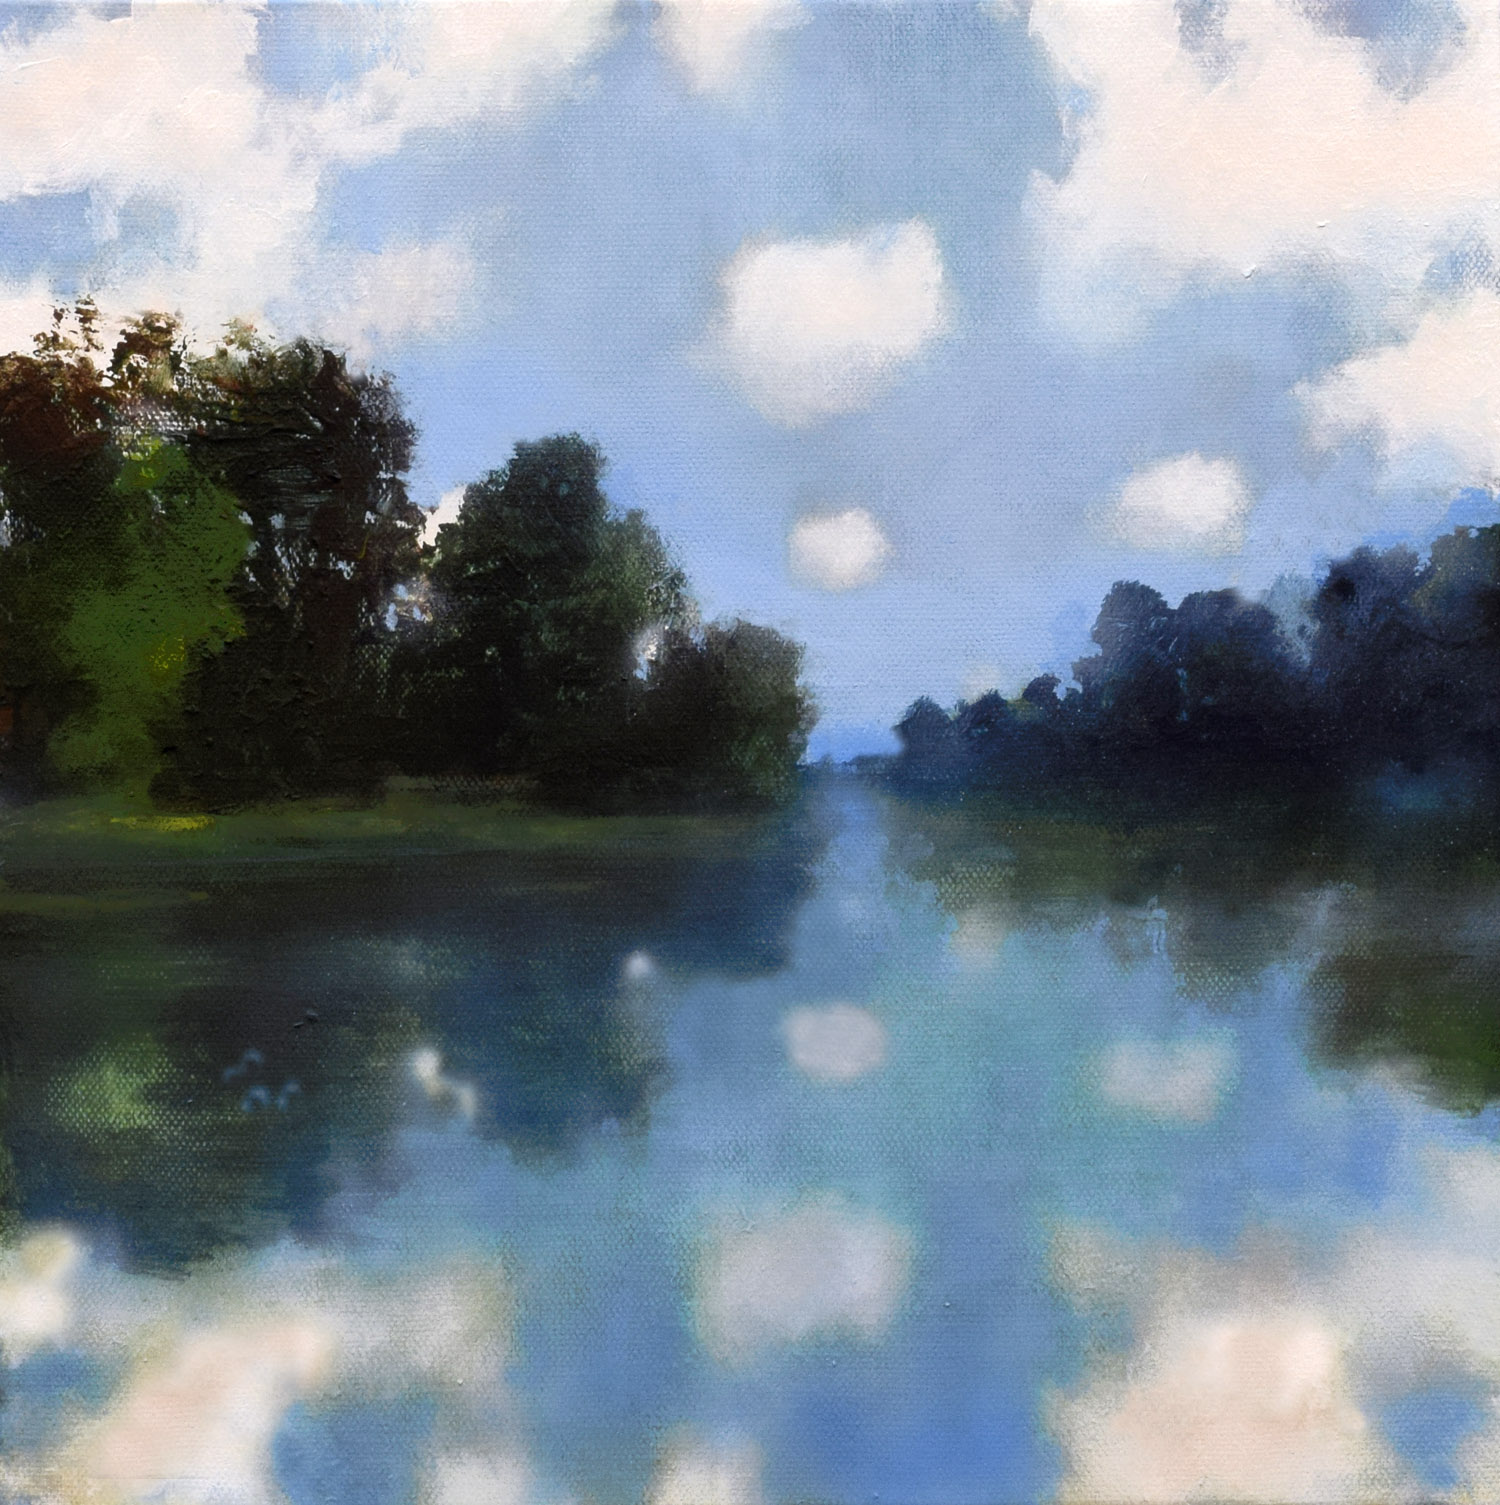 Quiet autumnal painting of cloud reflections called 'Clouds in the Ouvèze River' by John O'Grady